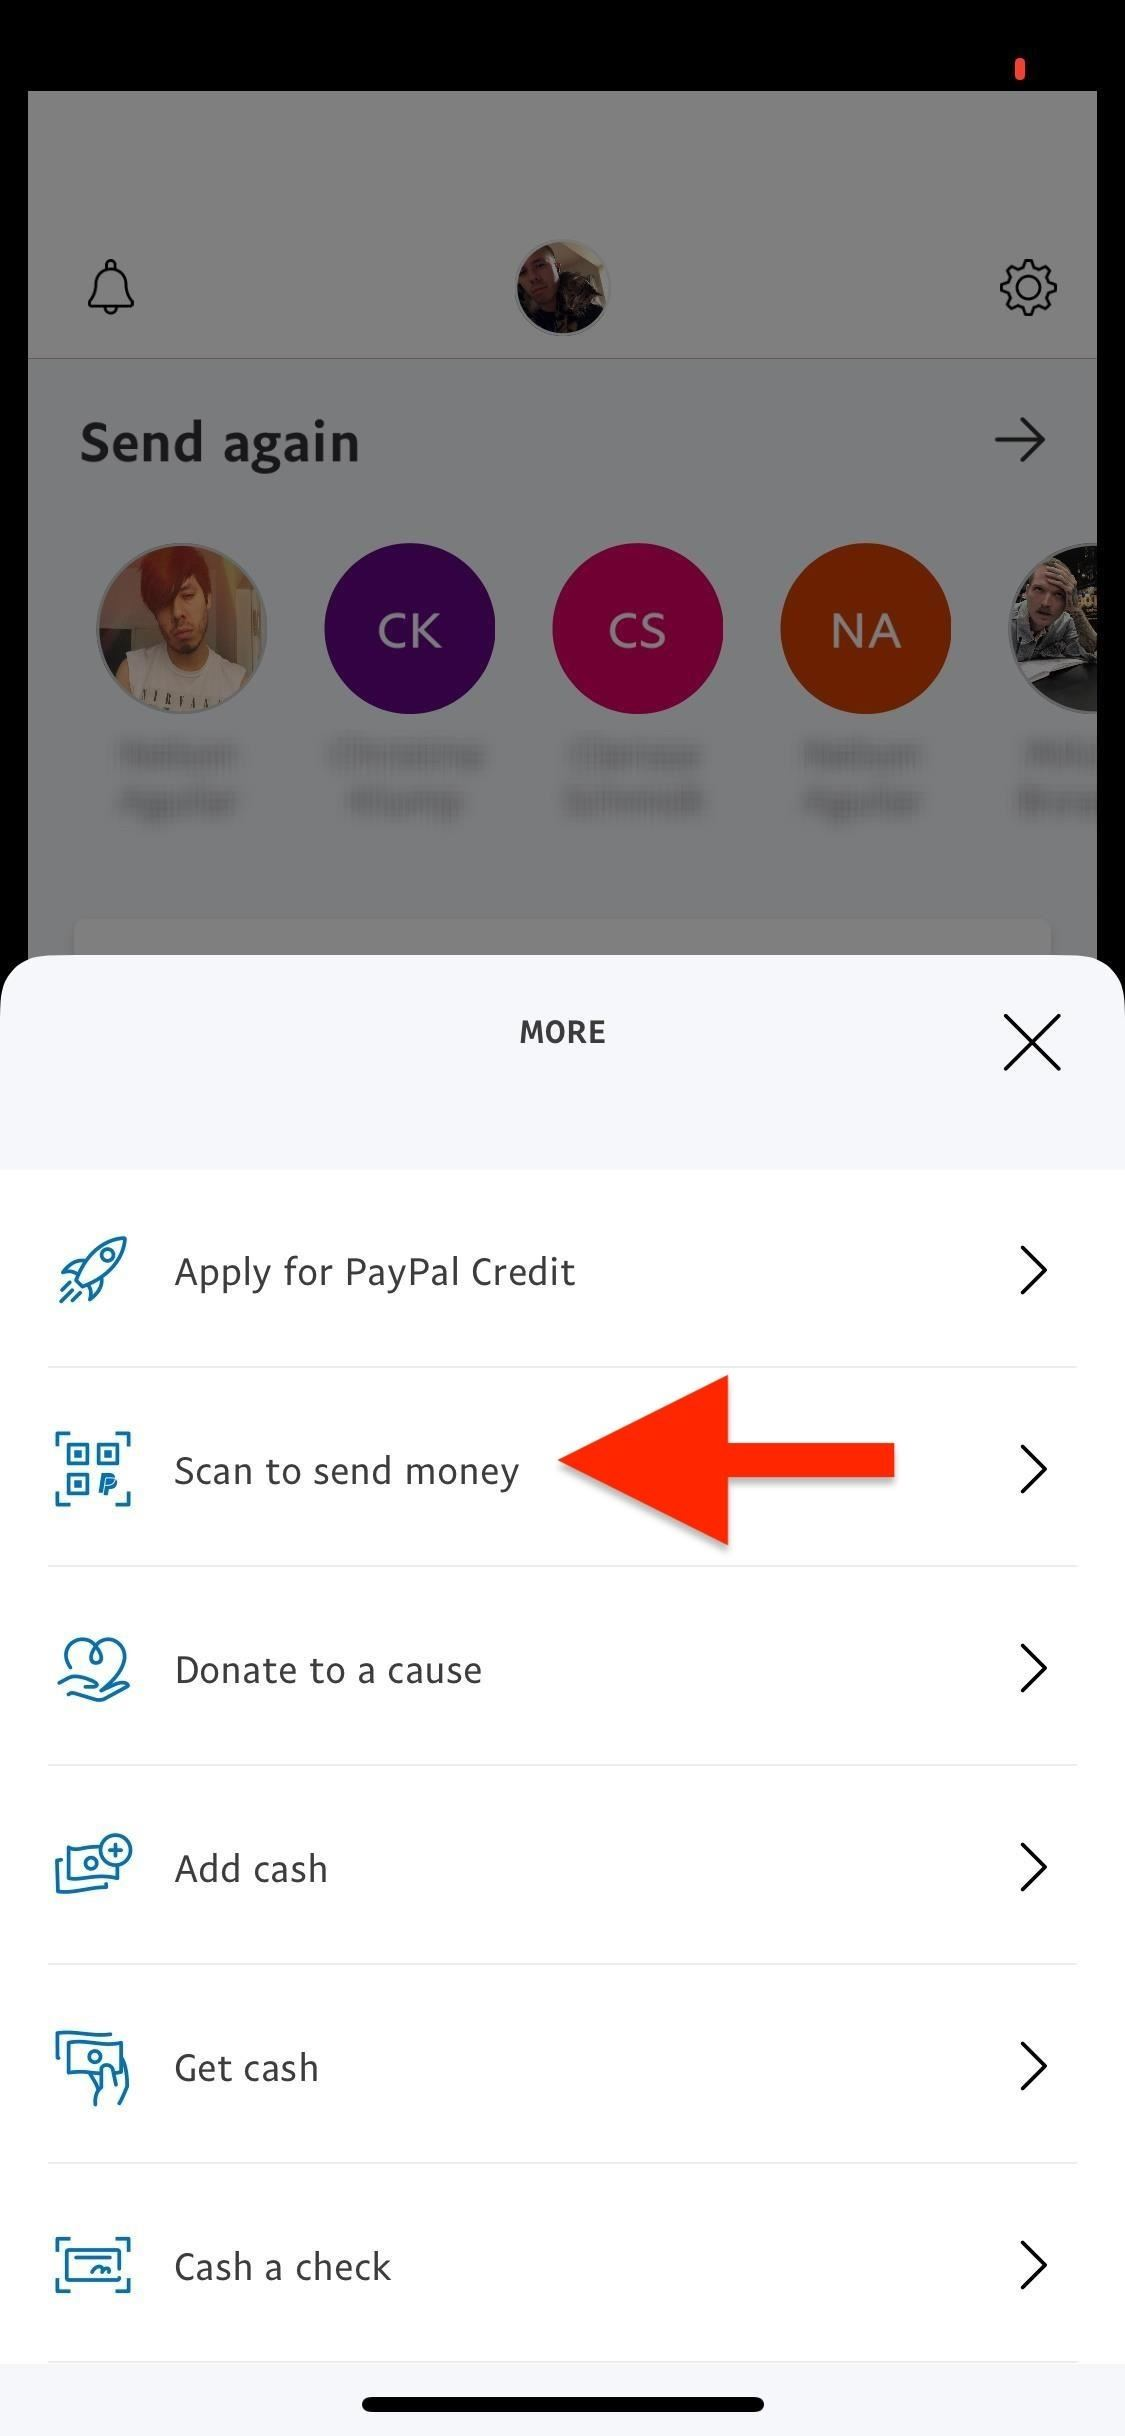 How to Share & Scan PayPal QR Codes for Faster Transactions